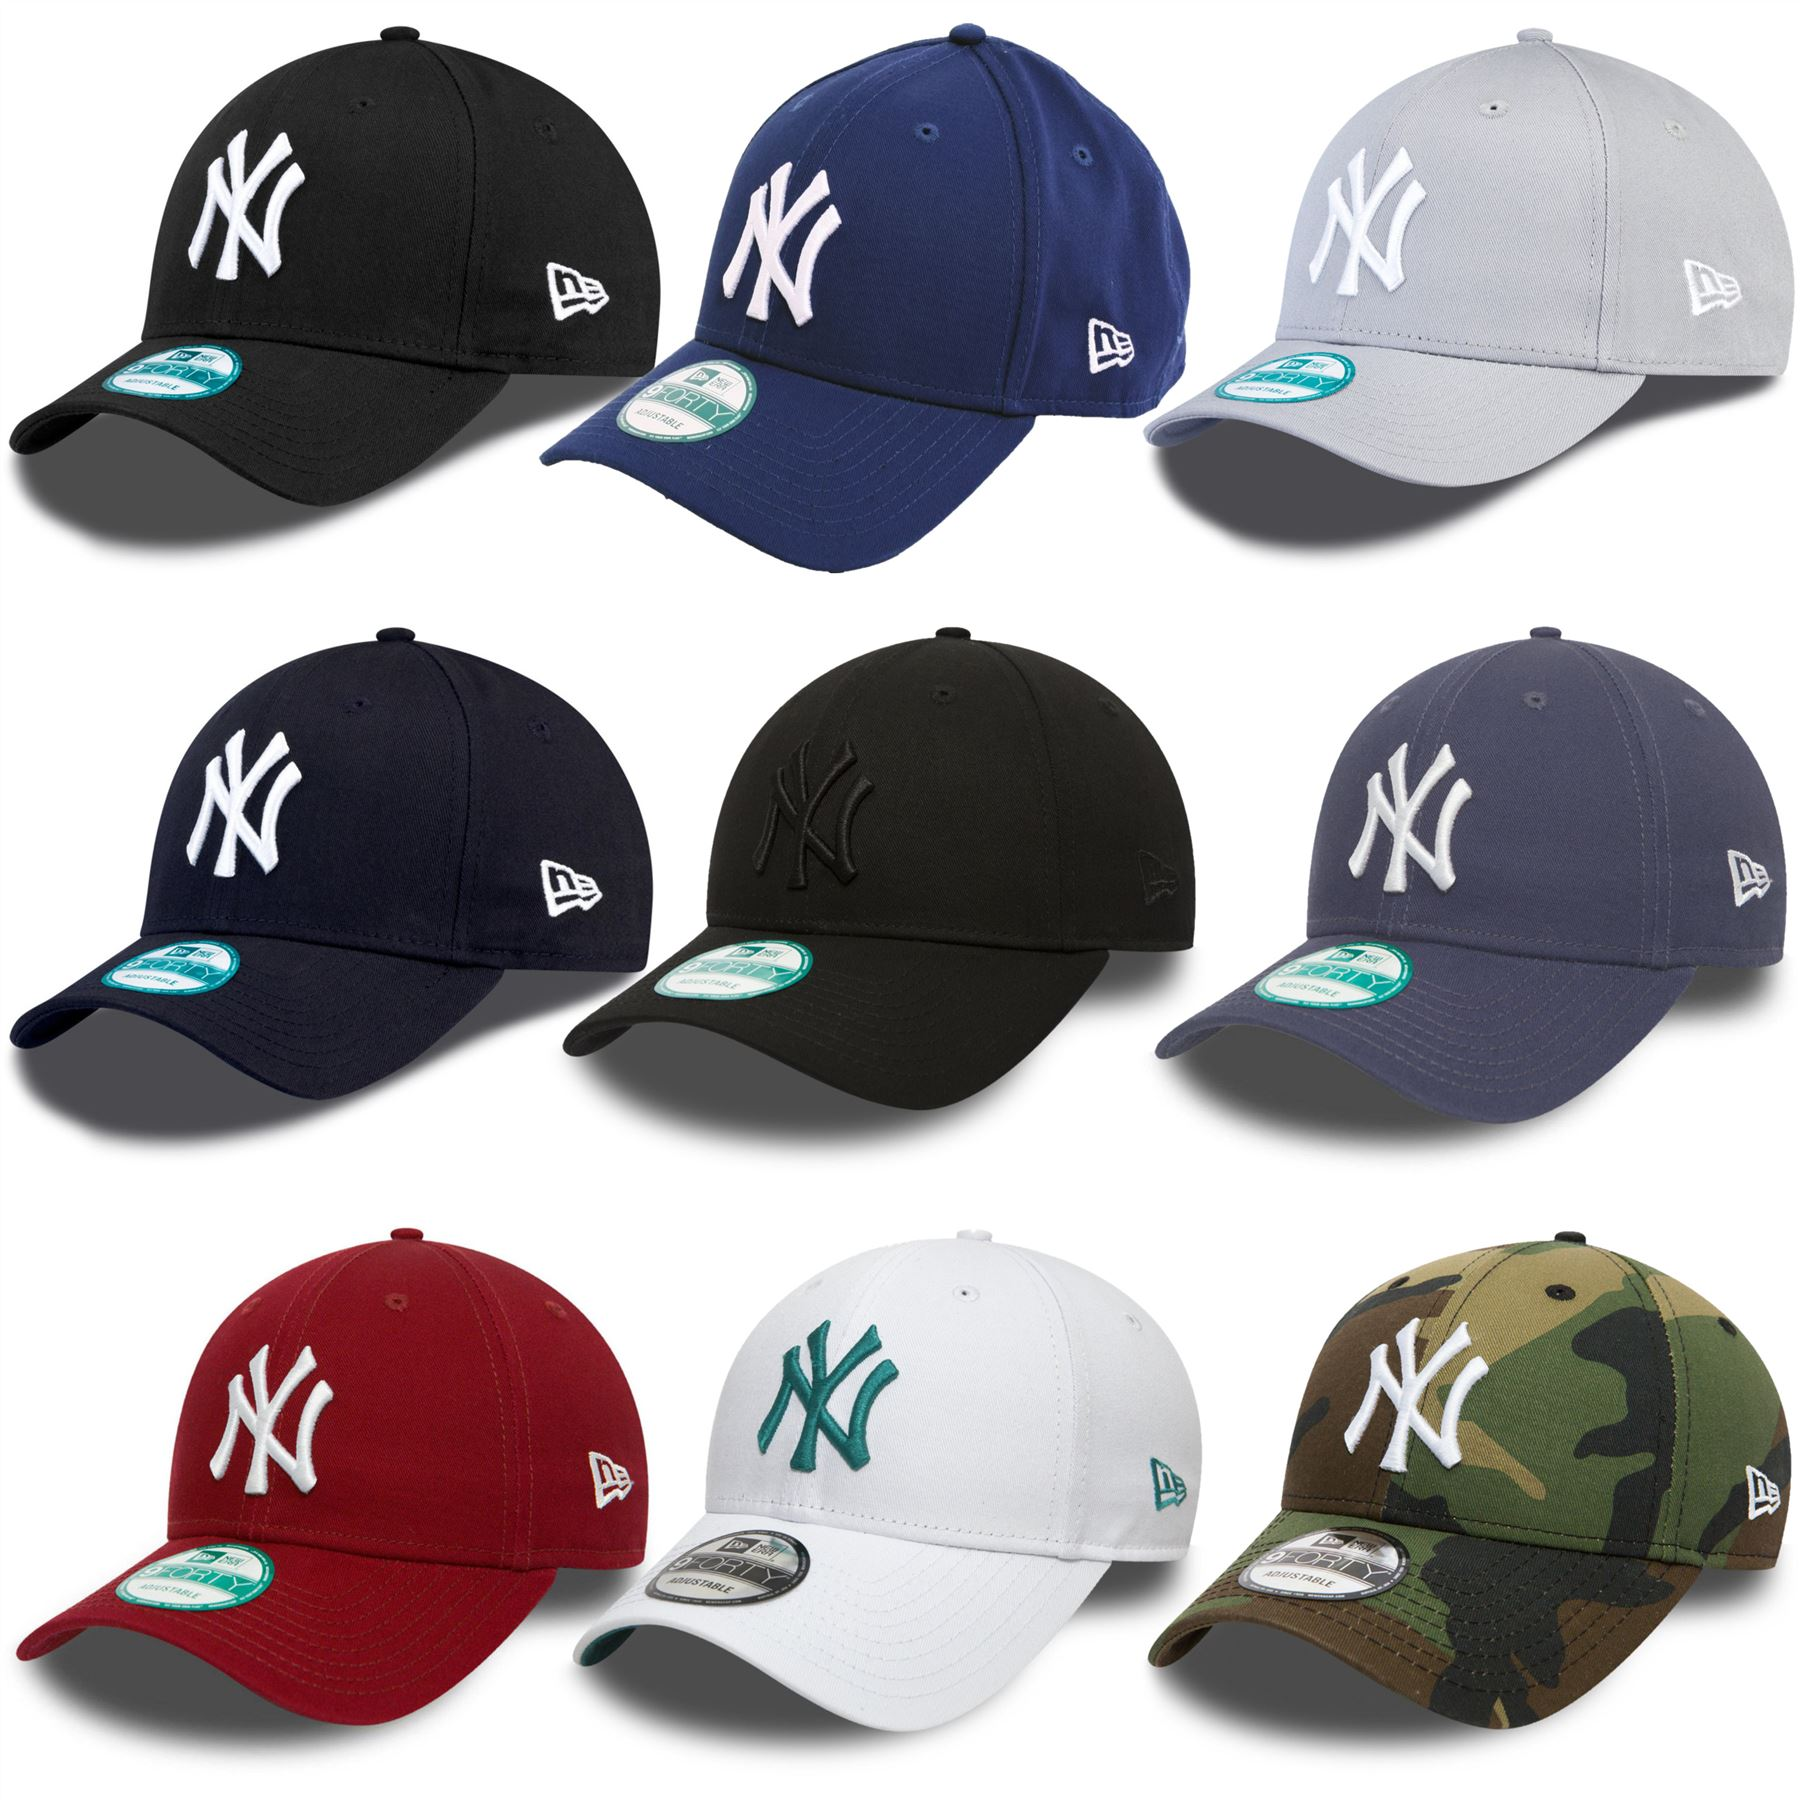 new era 9forty new york yankees adjustable baseball cap. Black Bedroom Furniture Sets. Home Design Ideas